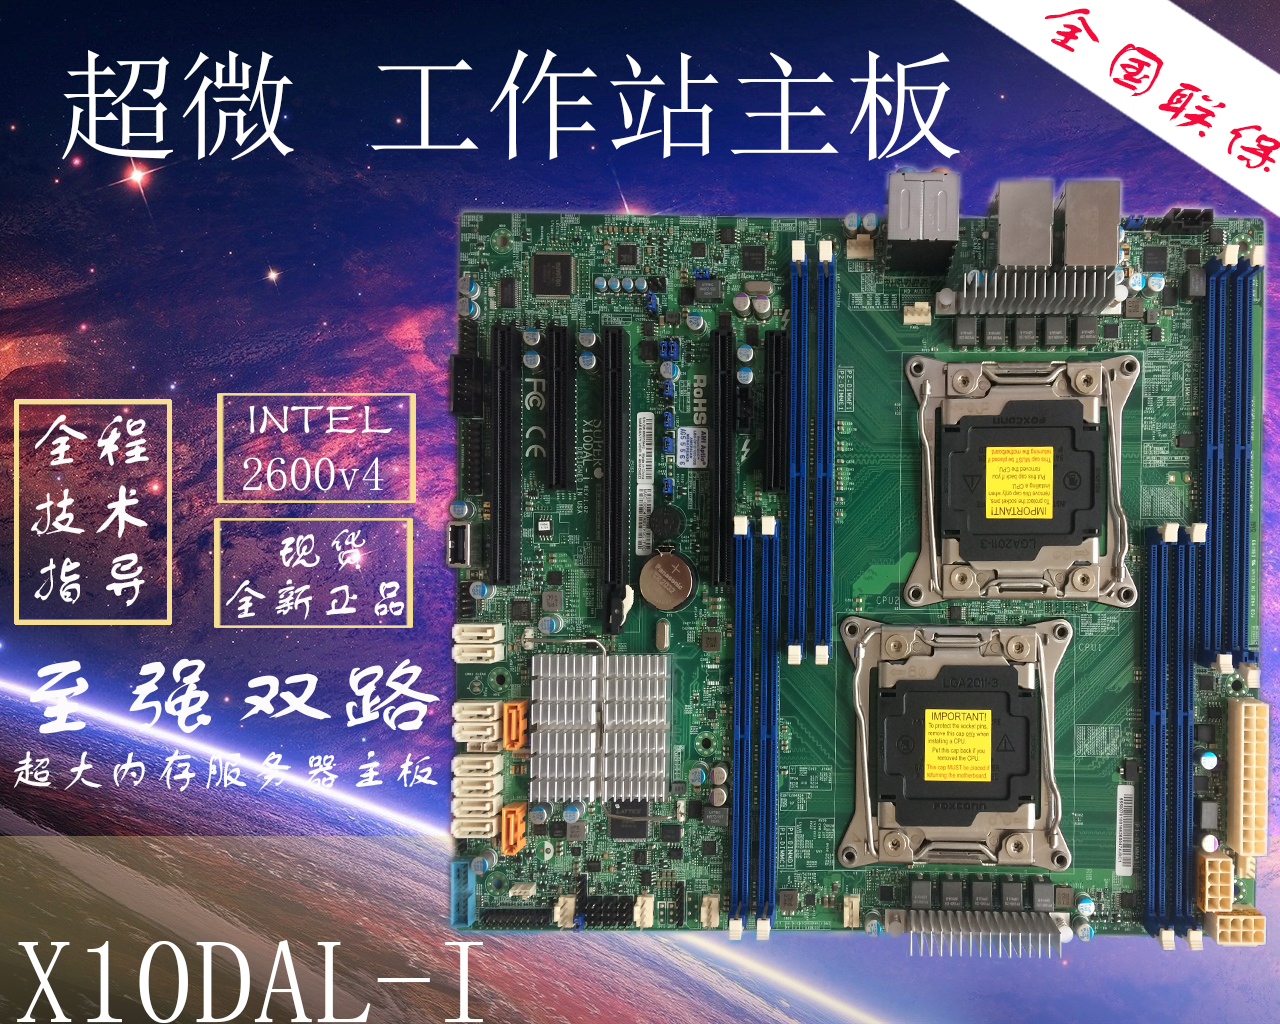 Ultra x10drl-I X10DAL-I Dual workstation motherboard ASUS z10pa-D8 graphics  server